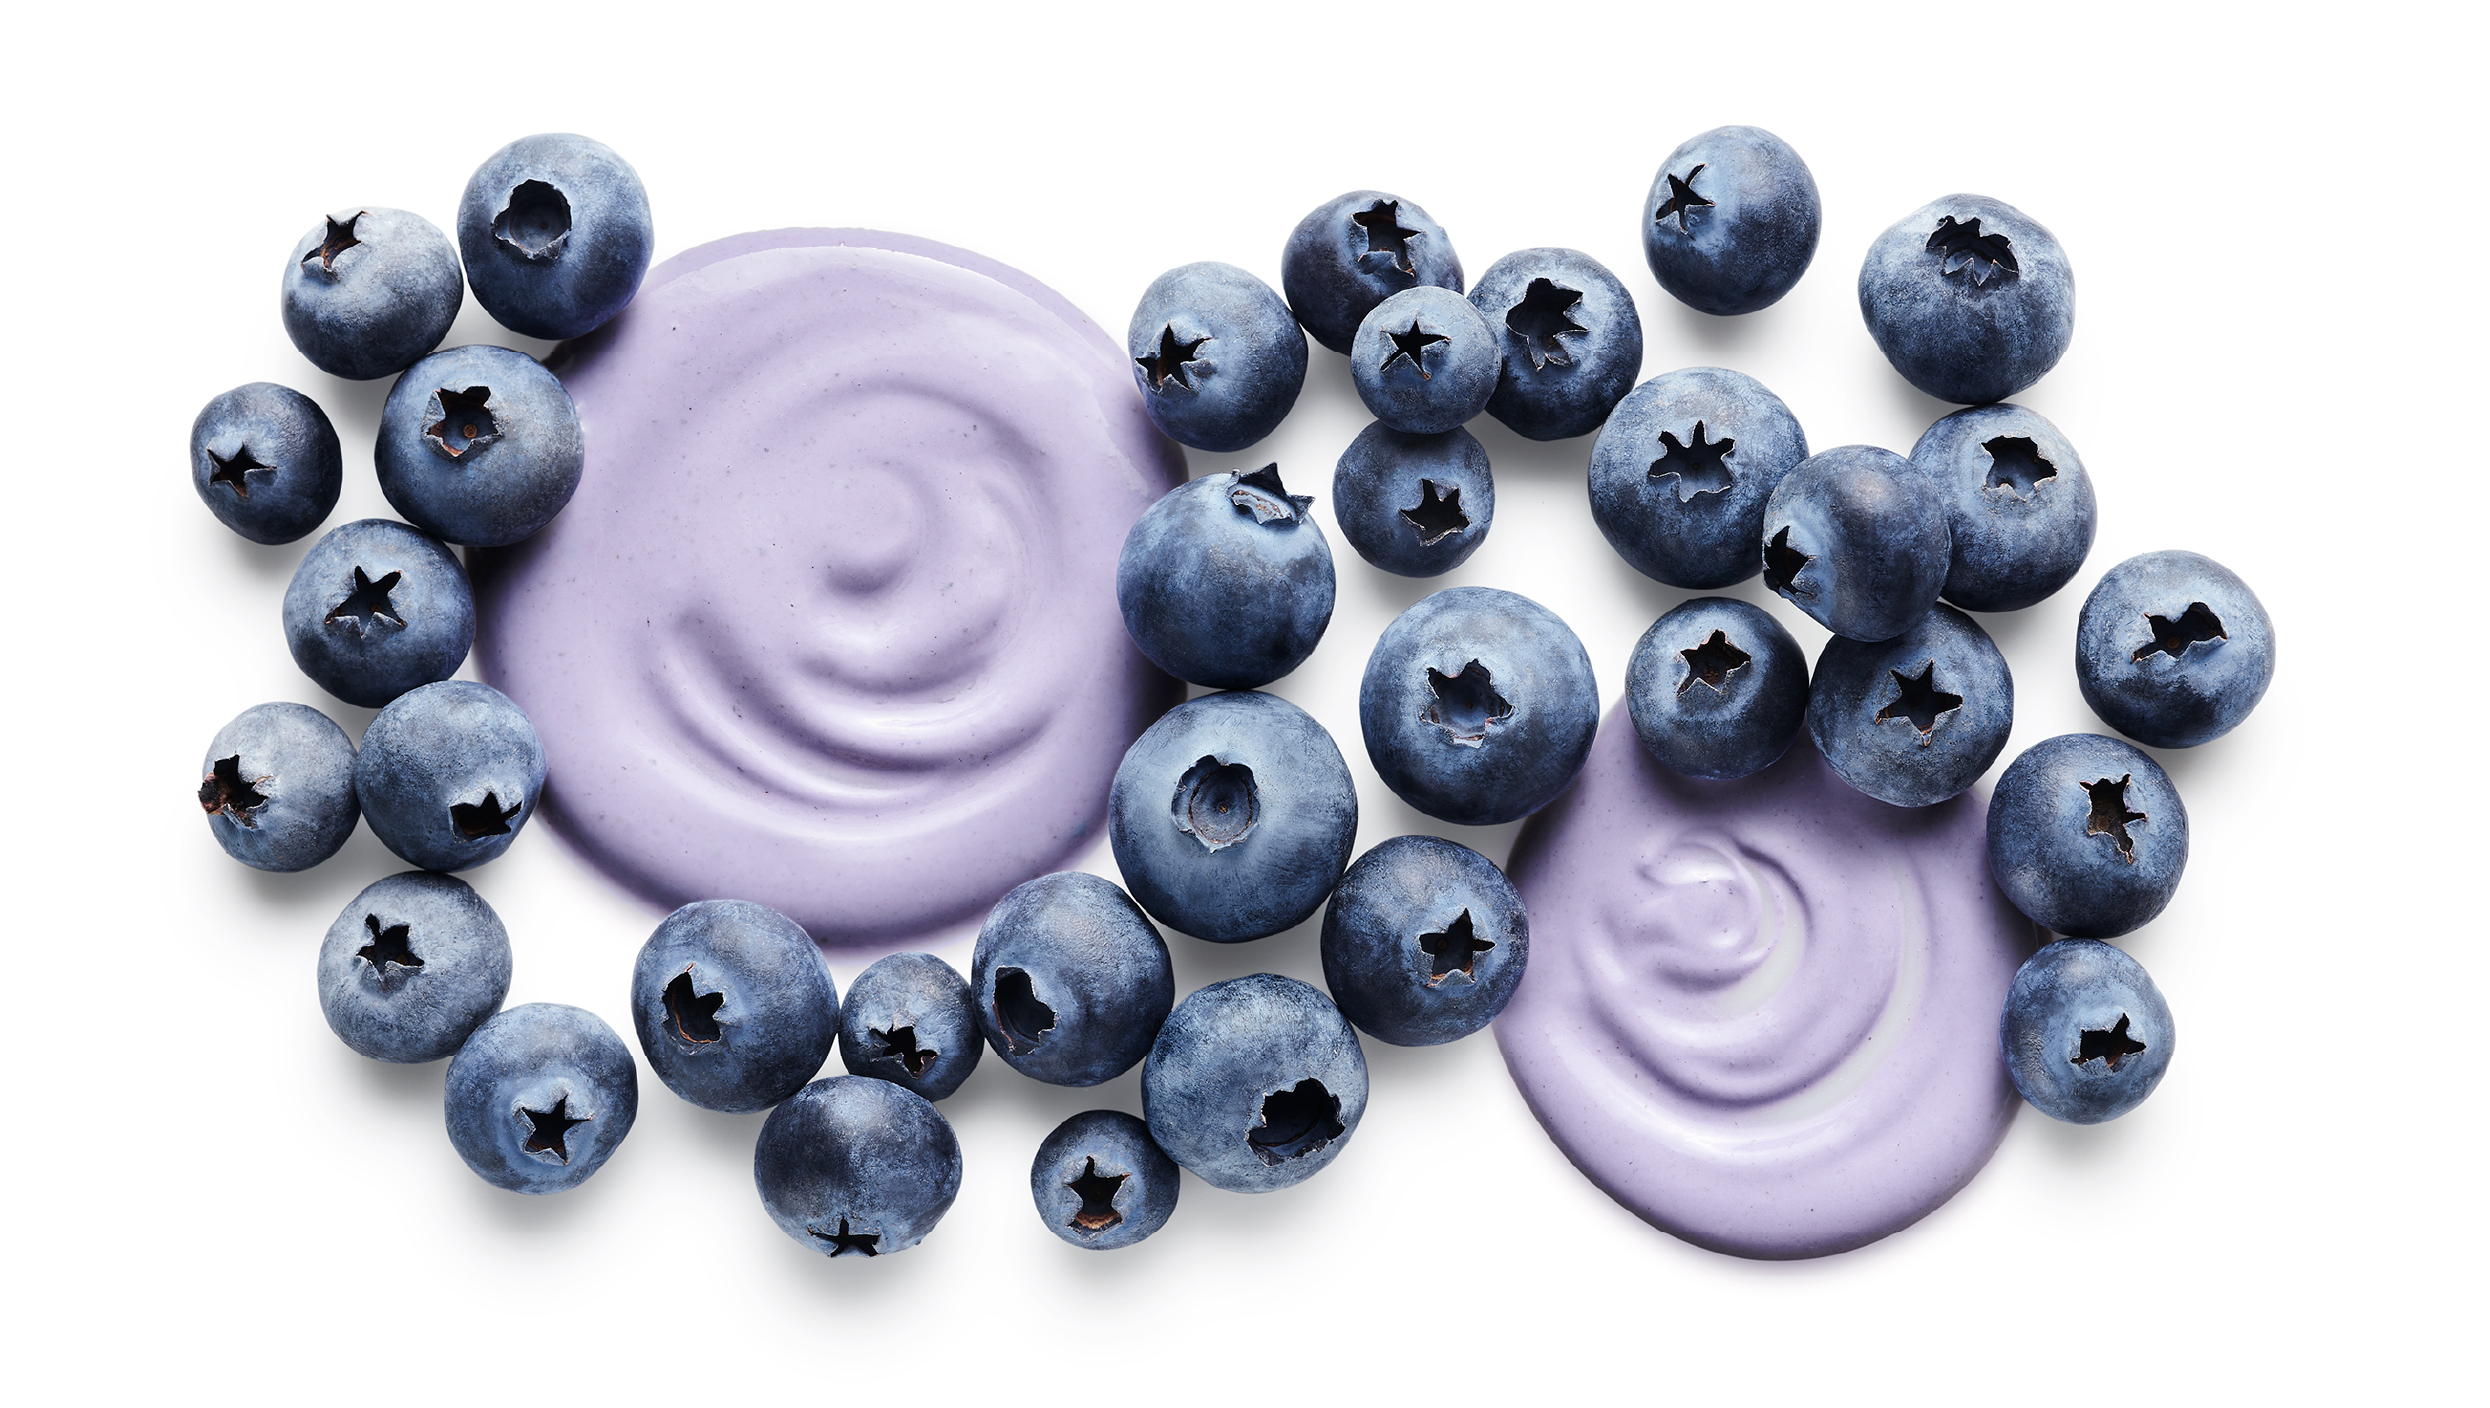 Blueberry Photography for Odwalla Protein Shake